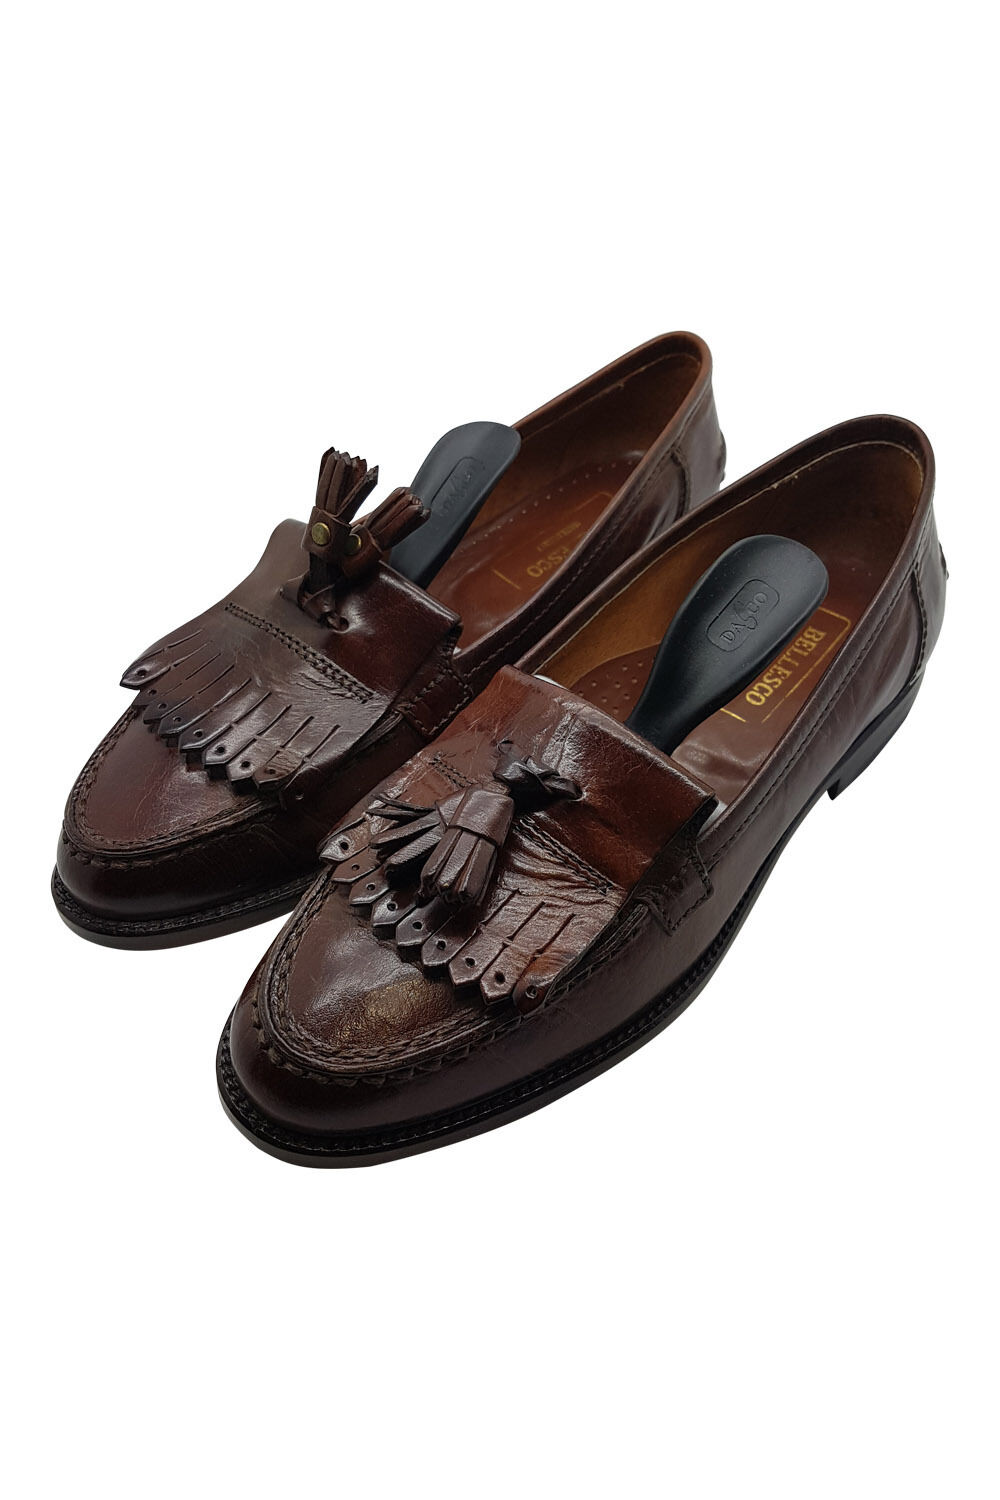 *BELLESCO* ITALIAN BROWN LEATHER SLIP ON SHOES SHOES SHOES (38) 87ebbc